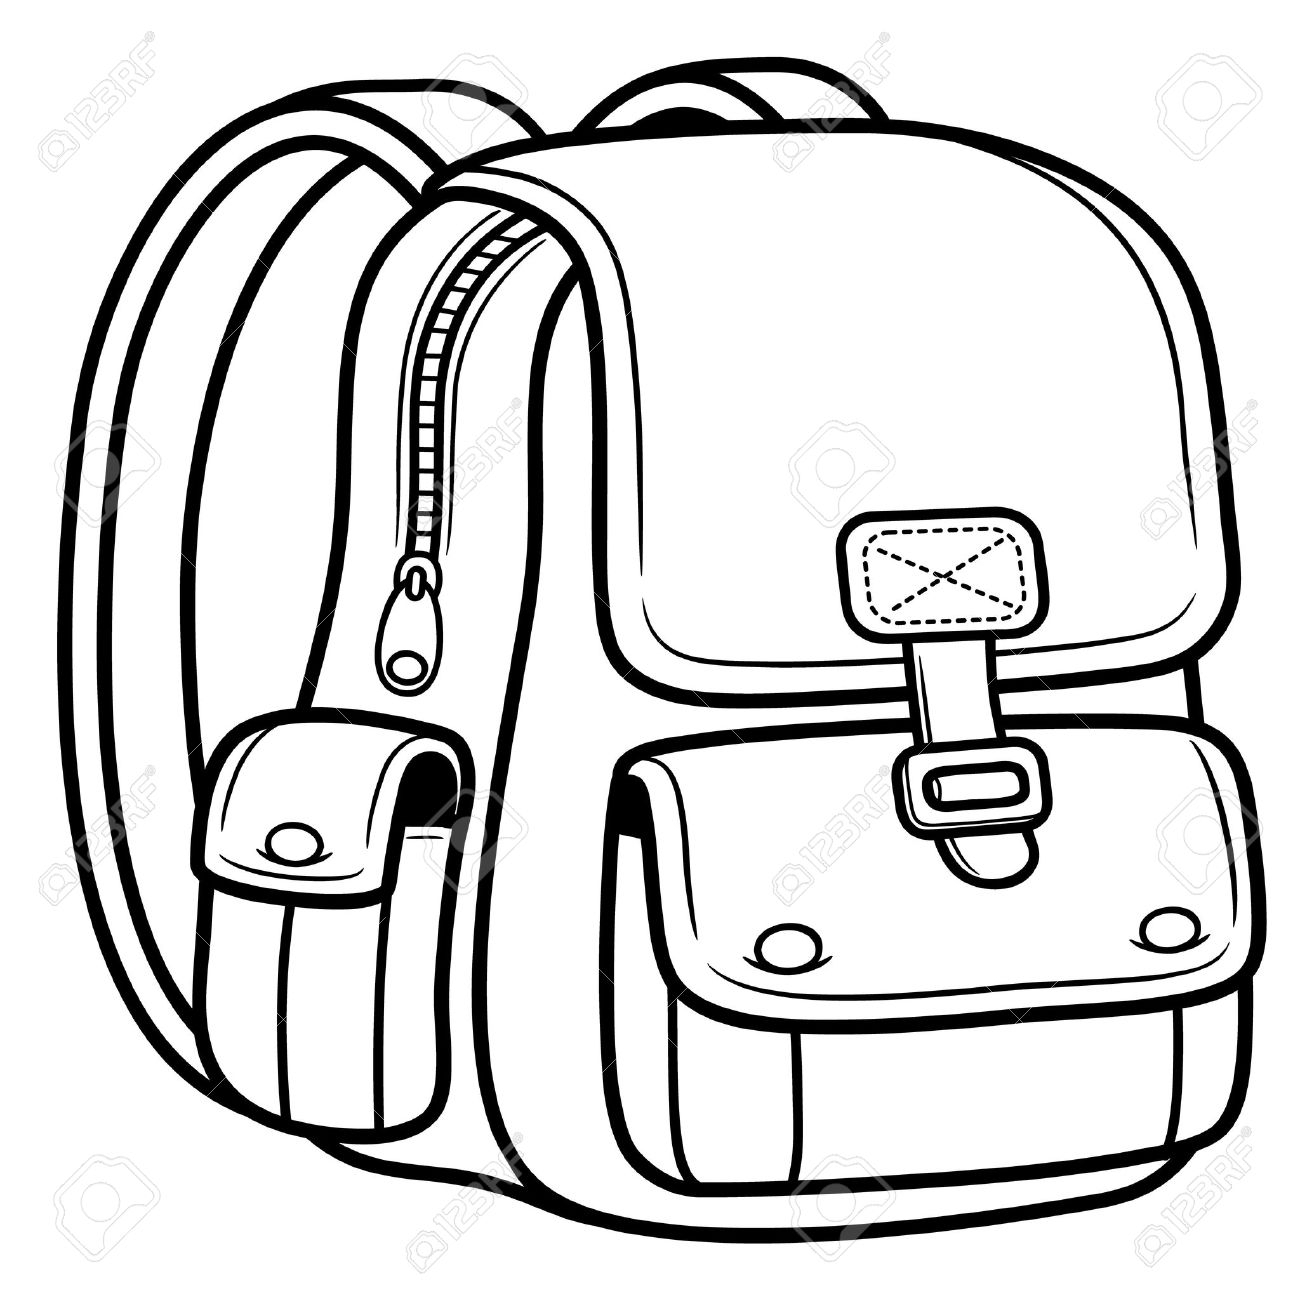 Color vs black and white clipart jpg library Bag Clipart Black And White Pencil And In Color Bag, Clip Art Black ... jpg library